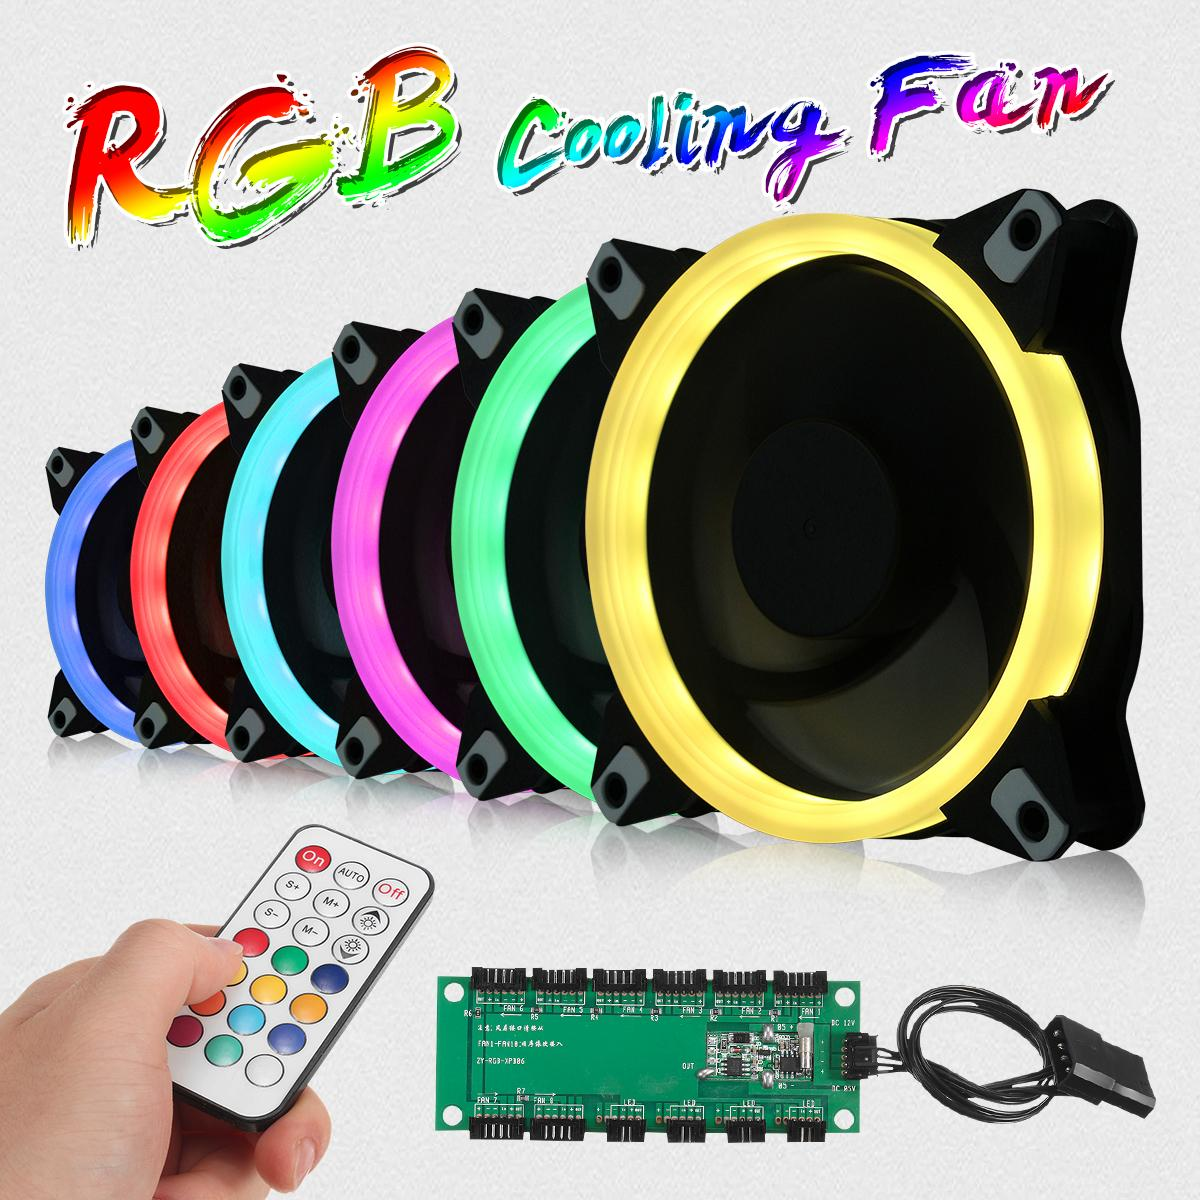 6pcs Computer Case PC Cooling Fan RGB Adjust LED 120mm Quiet + IR Remote New computer Cooler Cooling RGB Case Fan For CPU new 3u ultra short computer case 380mm large panel big power supply ultra short 3u computer case server computer case